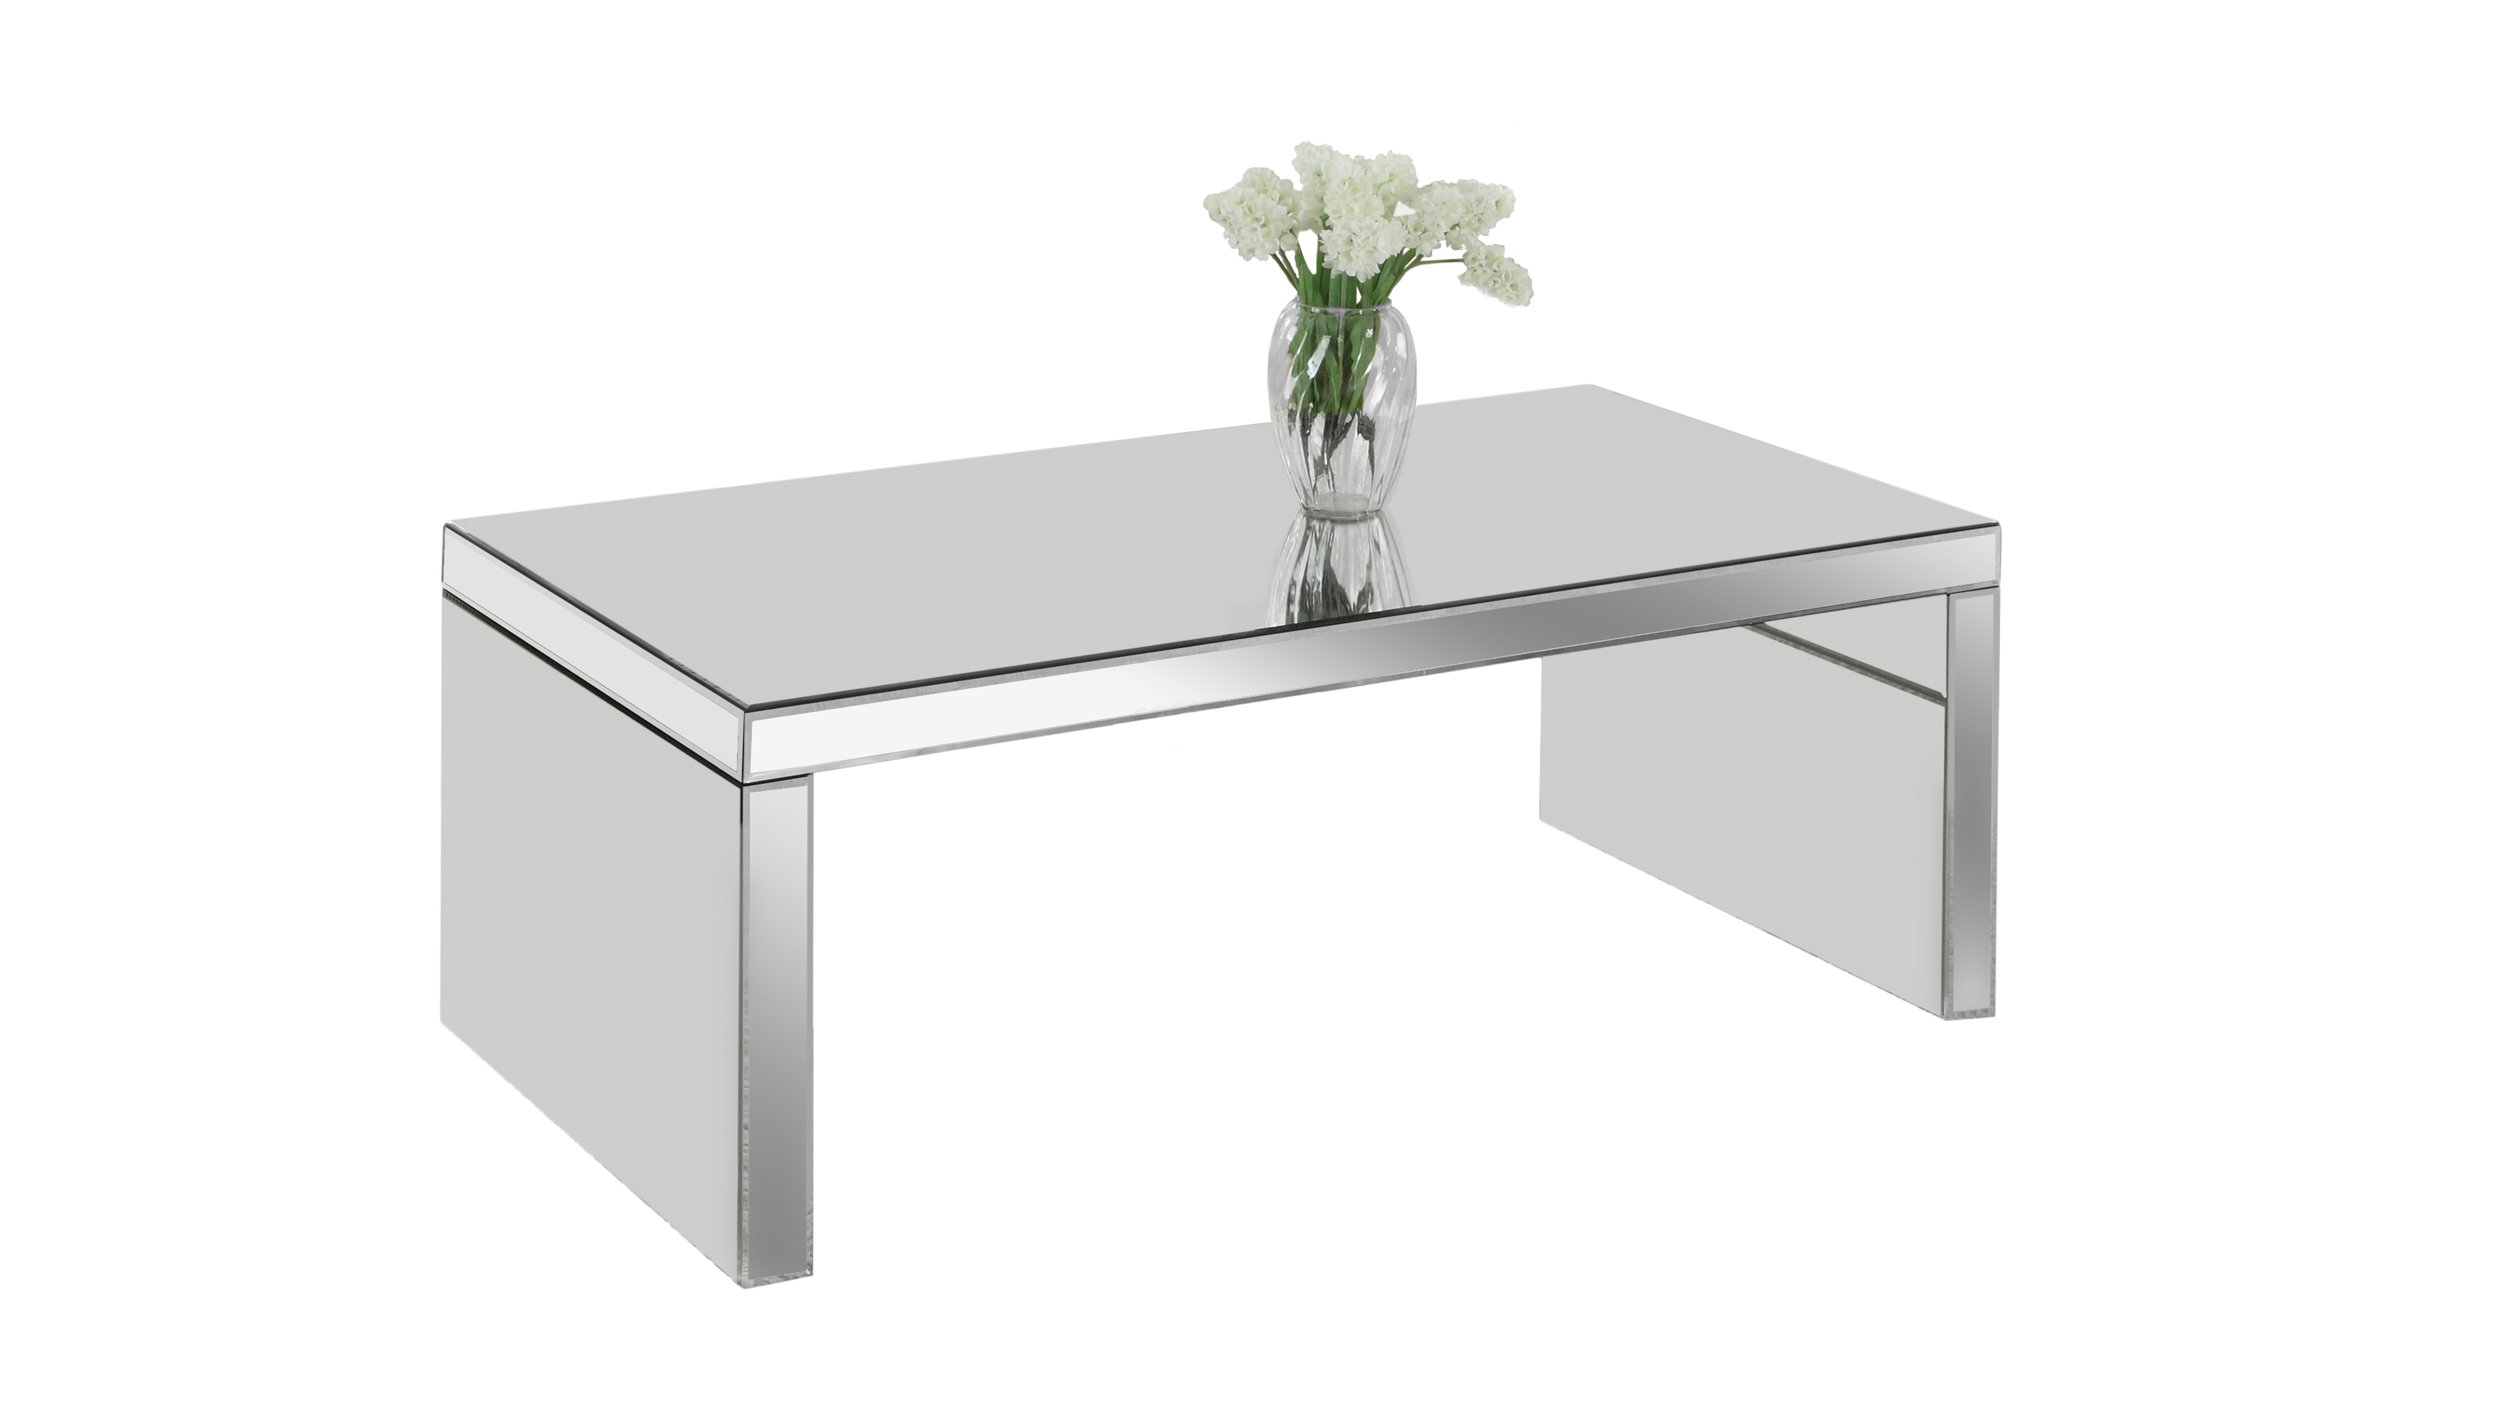 """Monarch Specialties Coffee Table - 48""""X 24"""" / Mirror PartNumber: 00857012000P KsnValue: 9166845 MfgPartNumber: I 3715"""